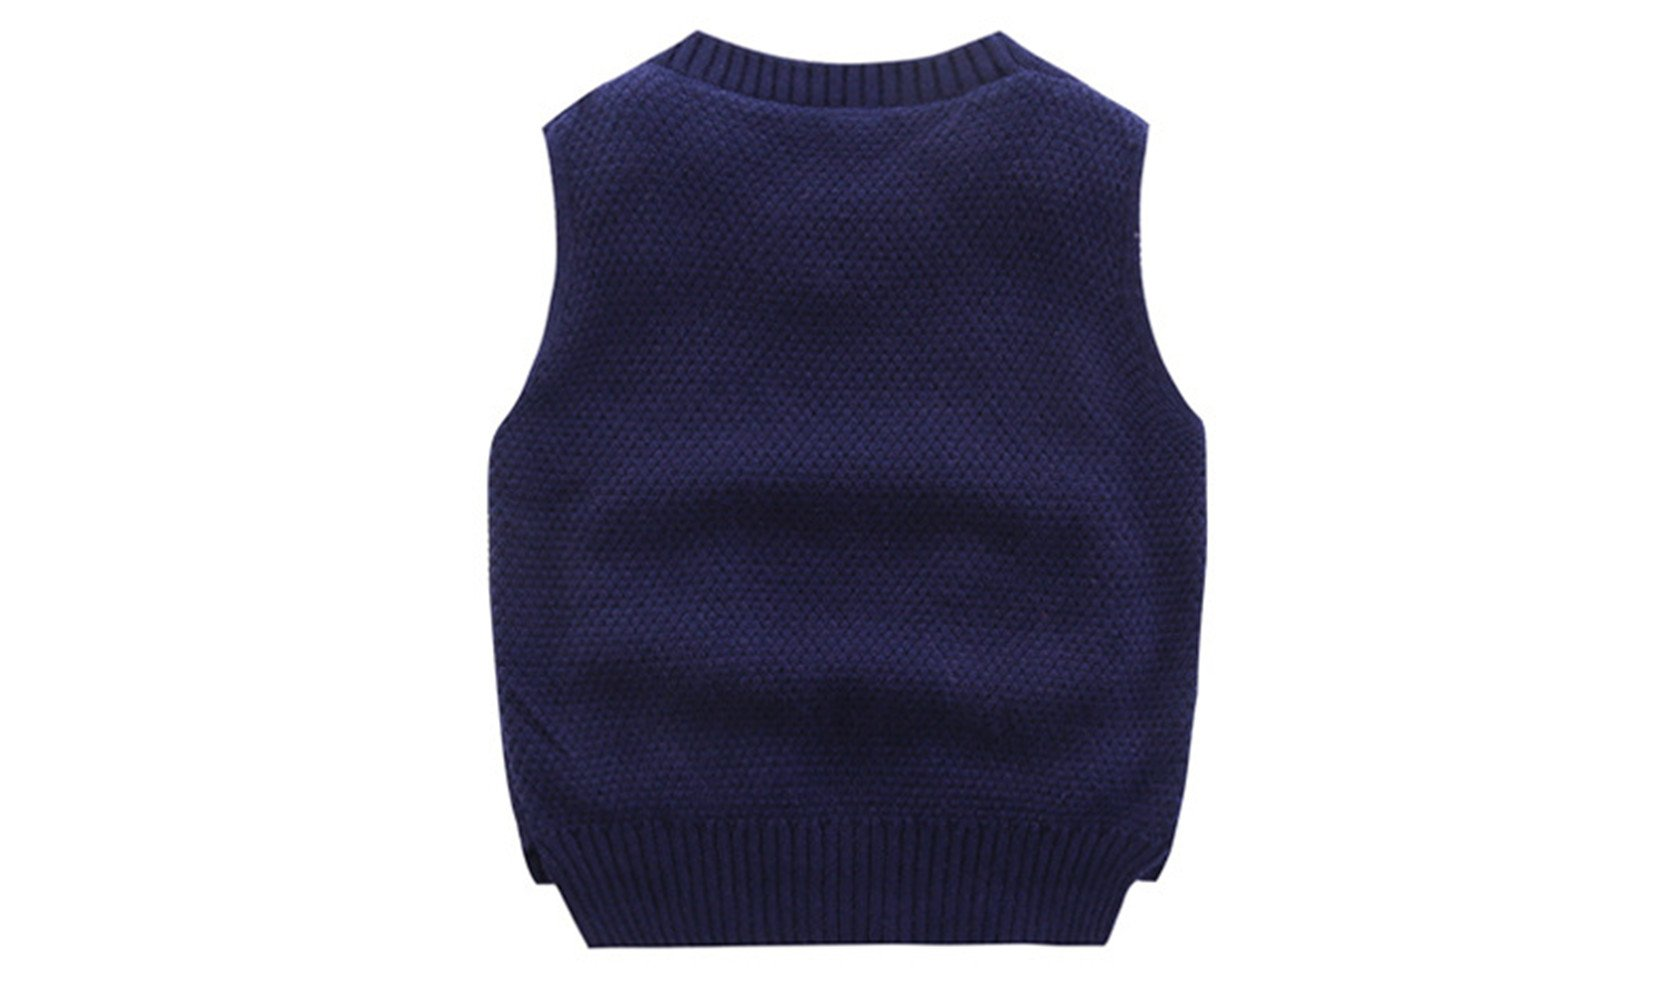 Mrsrui Boy Sweaters School Uniform Knitted Sleeveless Tank Clothes Tops by Mrsrui (Image #2)